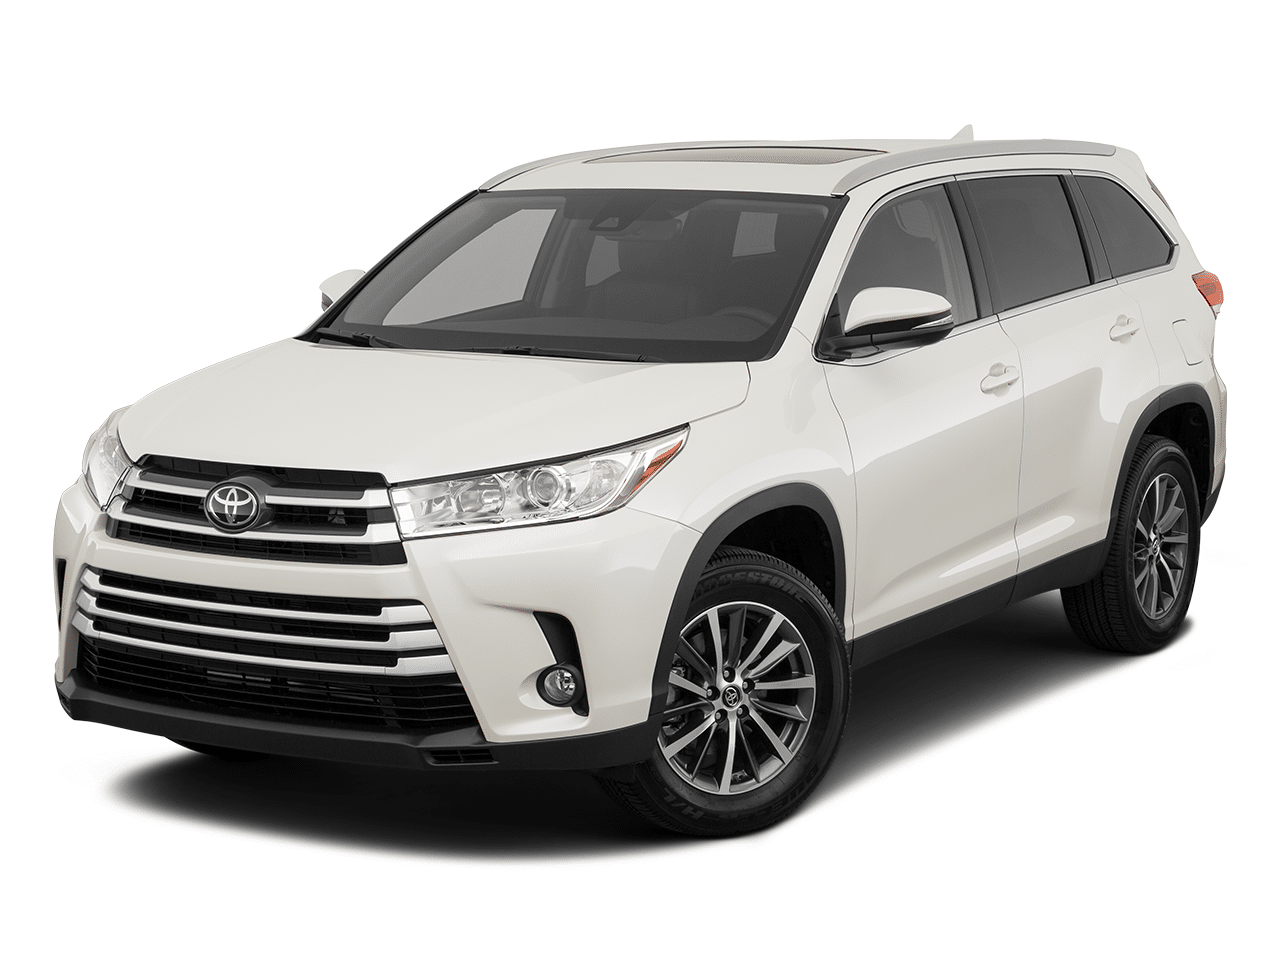 Pacific-Car-Rentals-Midsize-SUV-Toyota-Highlander